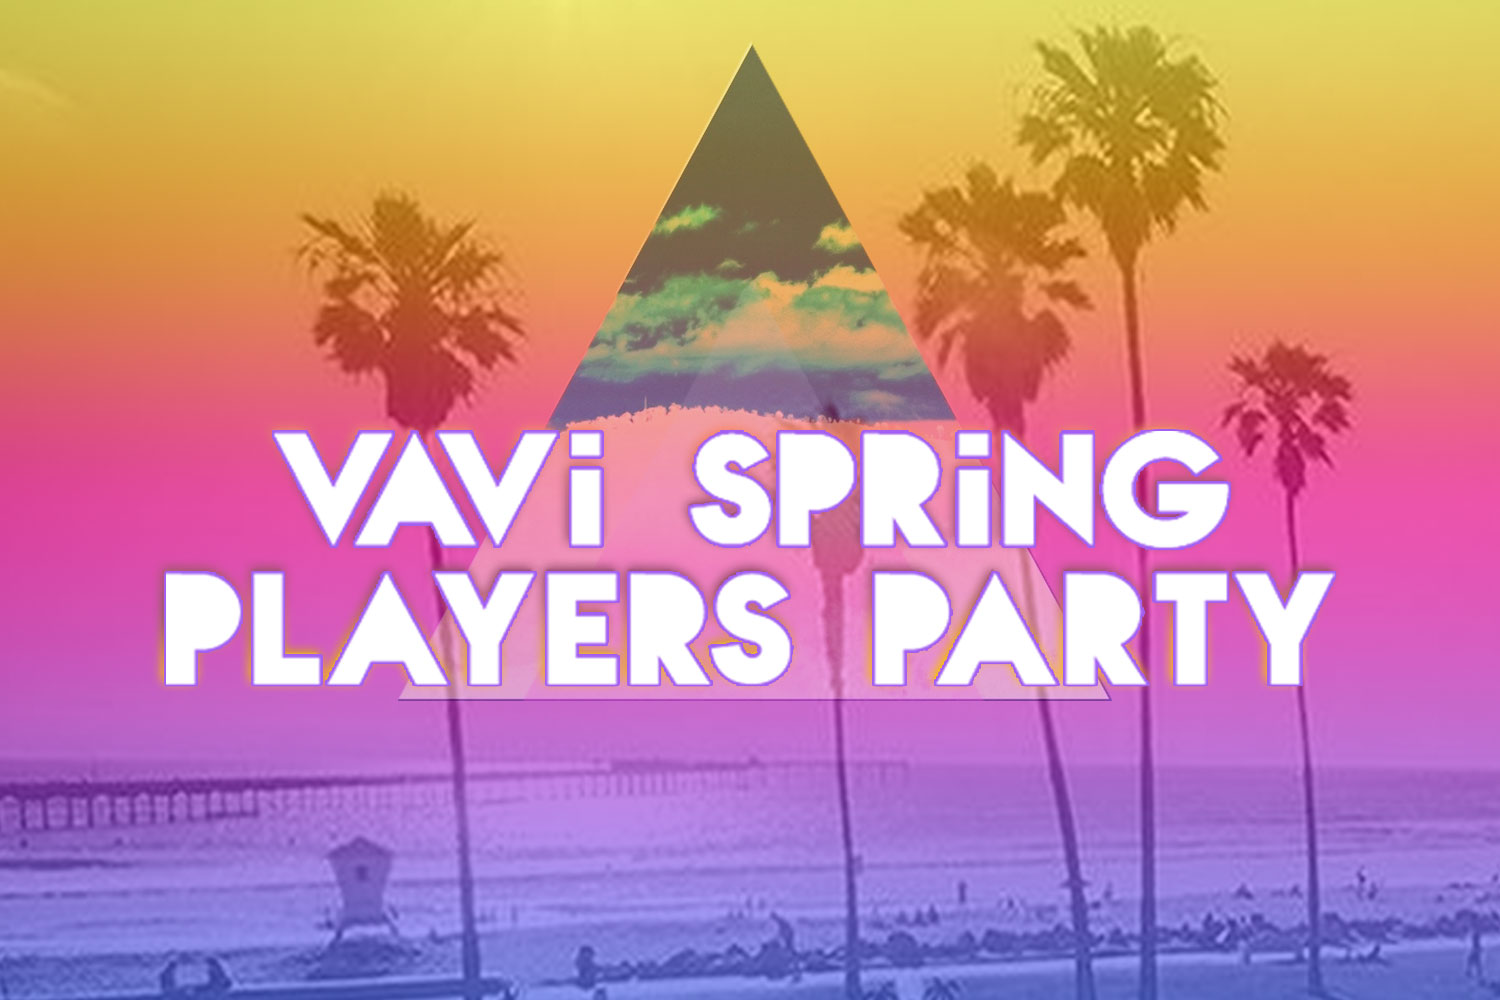 PlayersParty Header